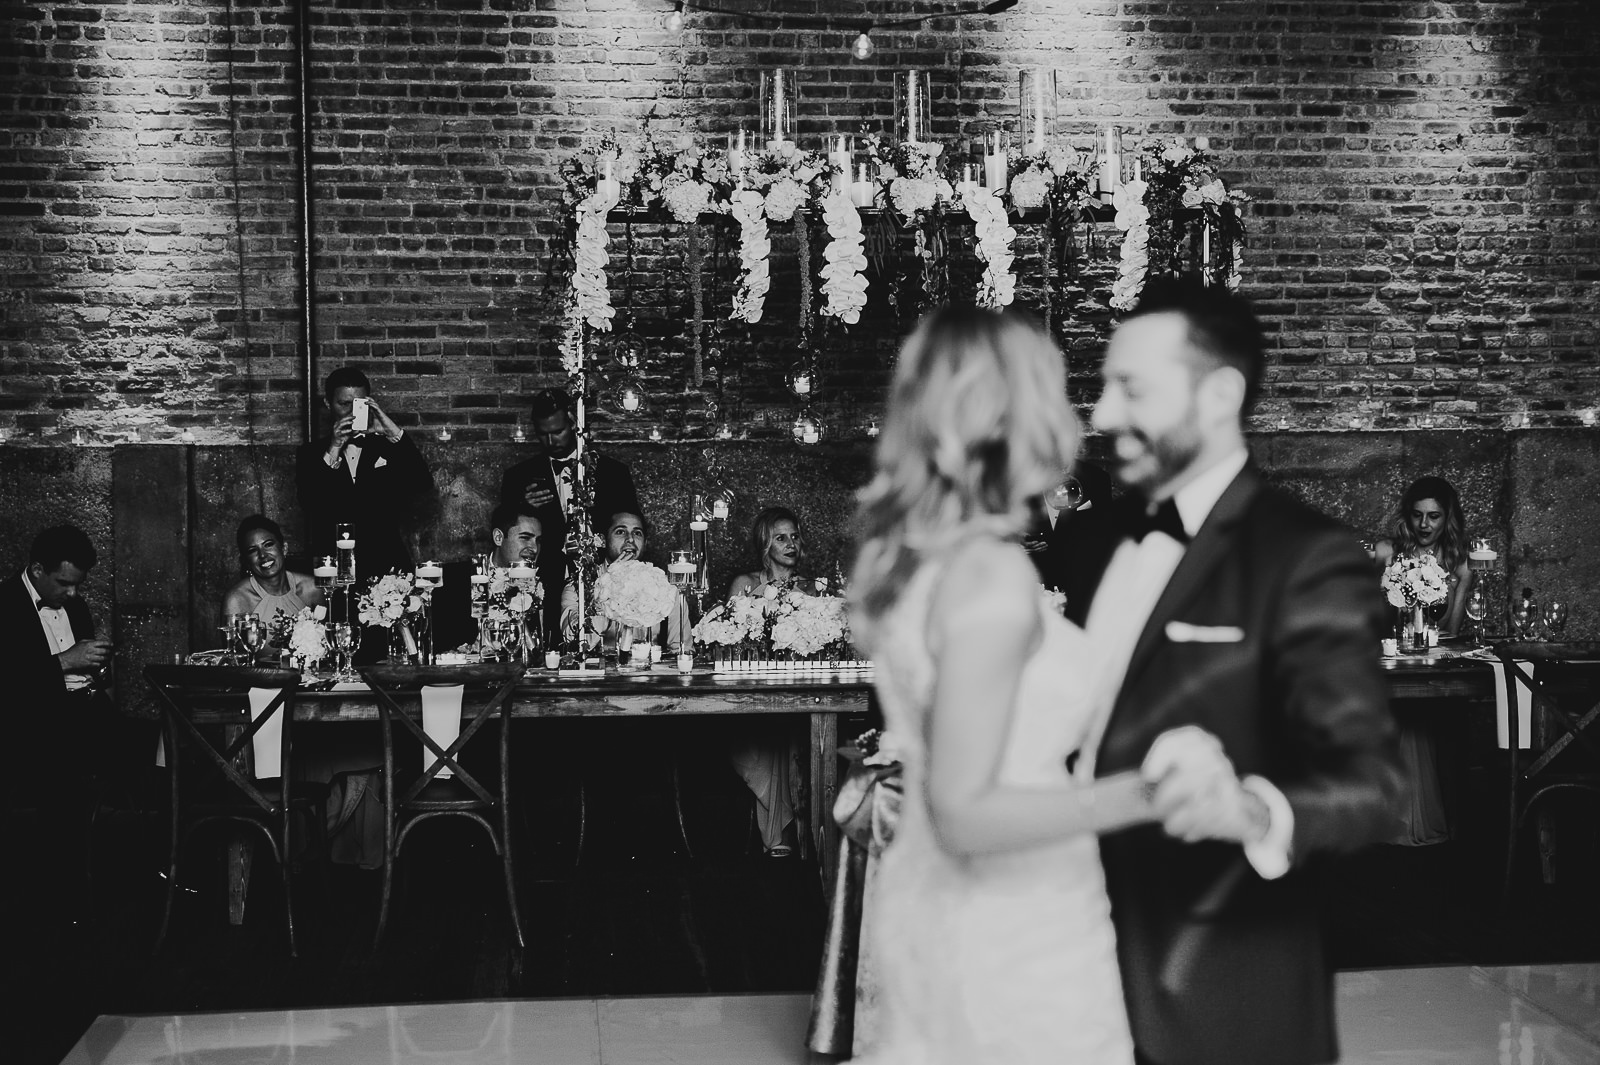 59 first dance in black and white - Chicago Wedding Photography at Gallery 1028 // Courtnie + David